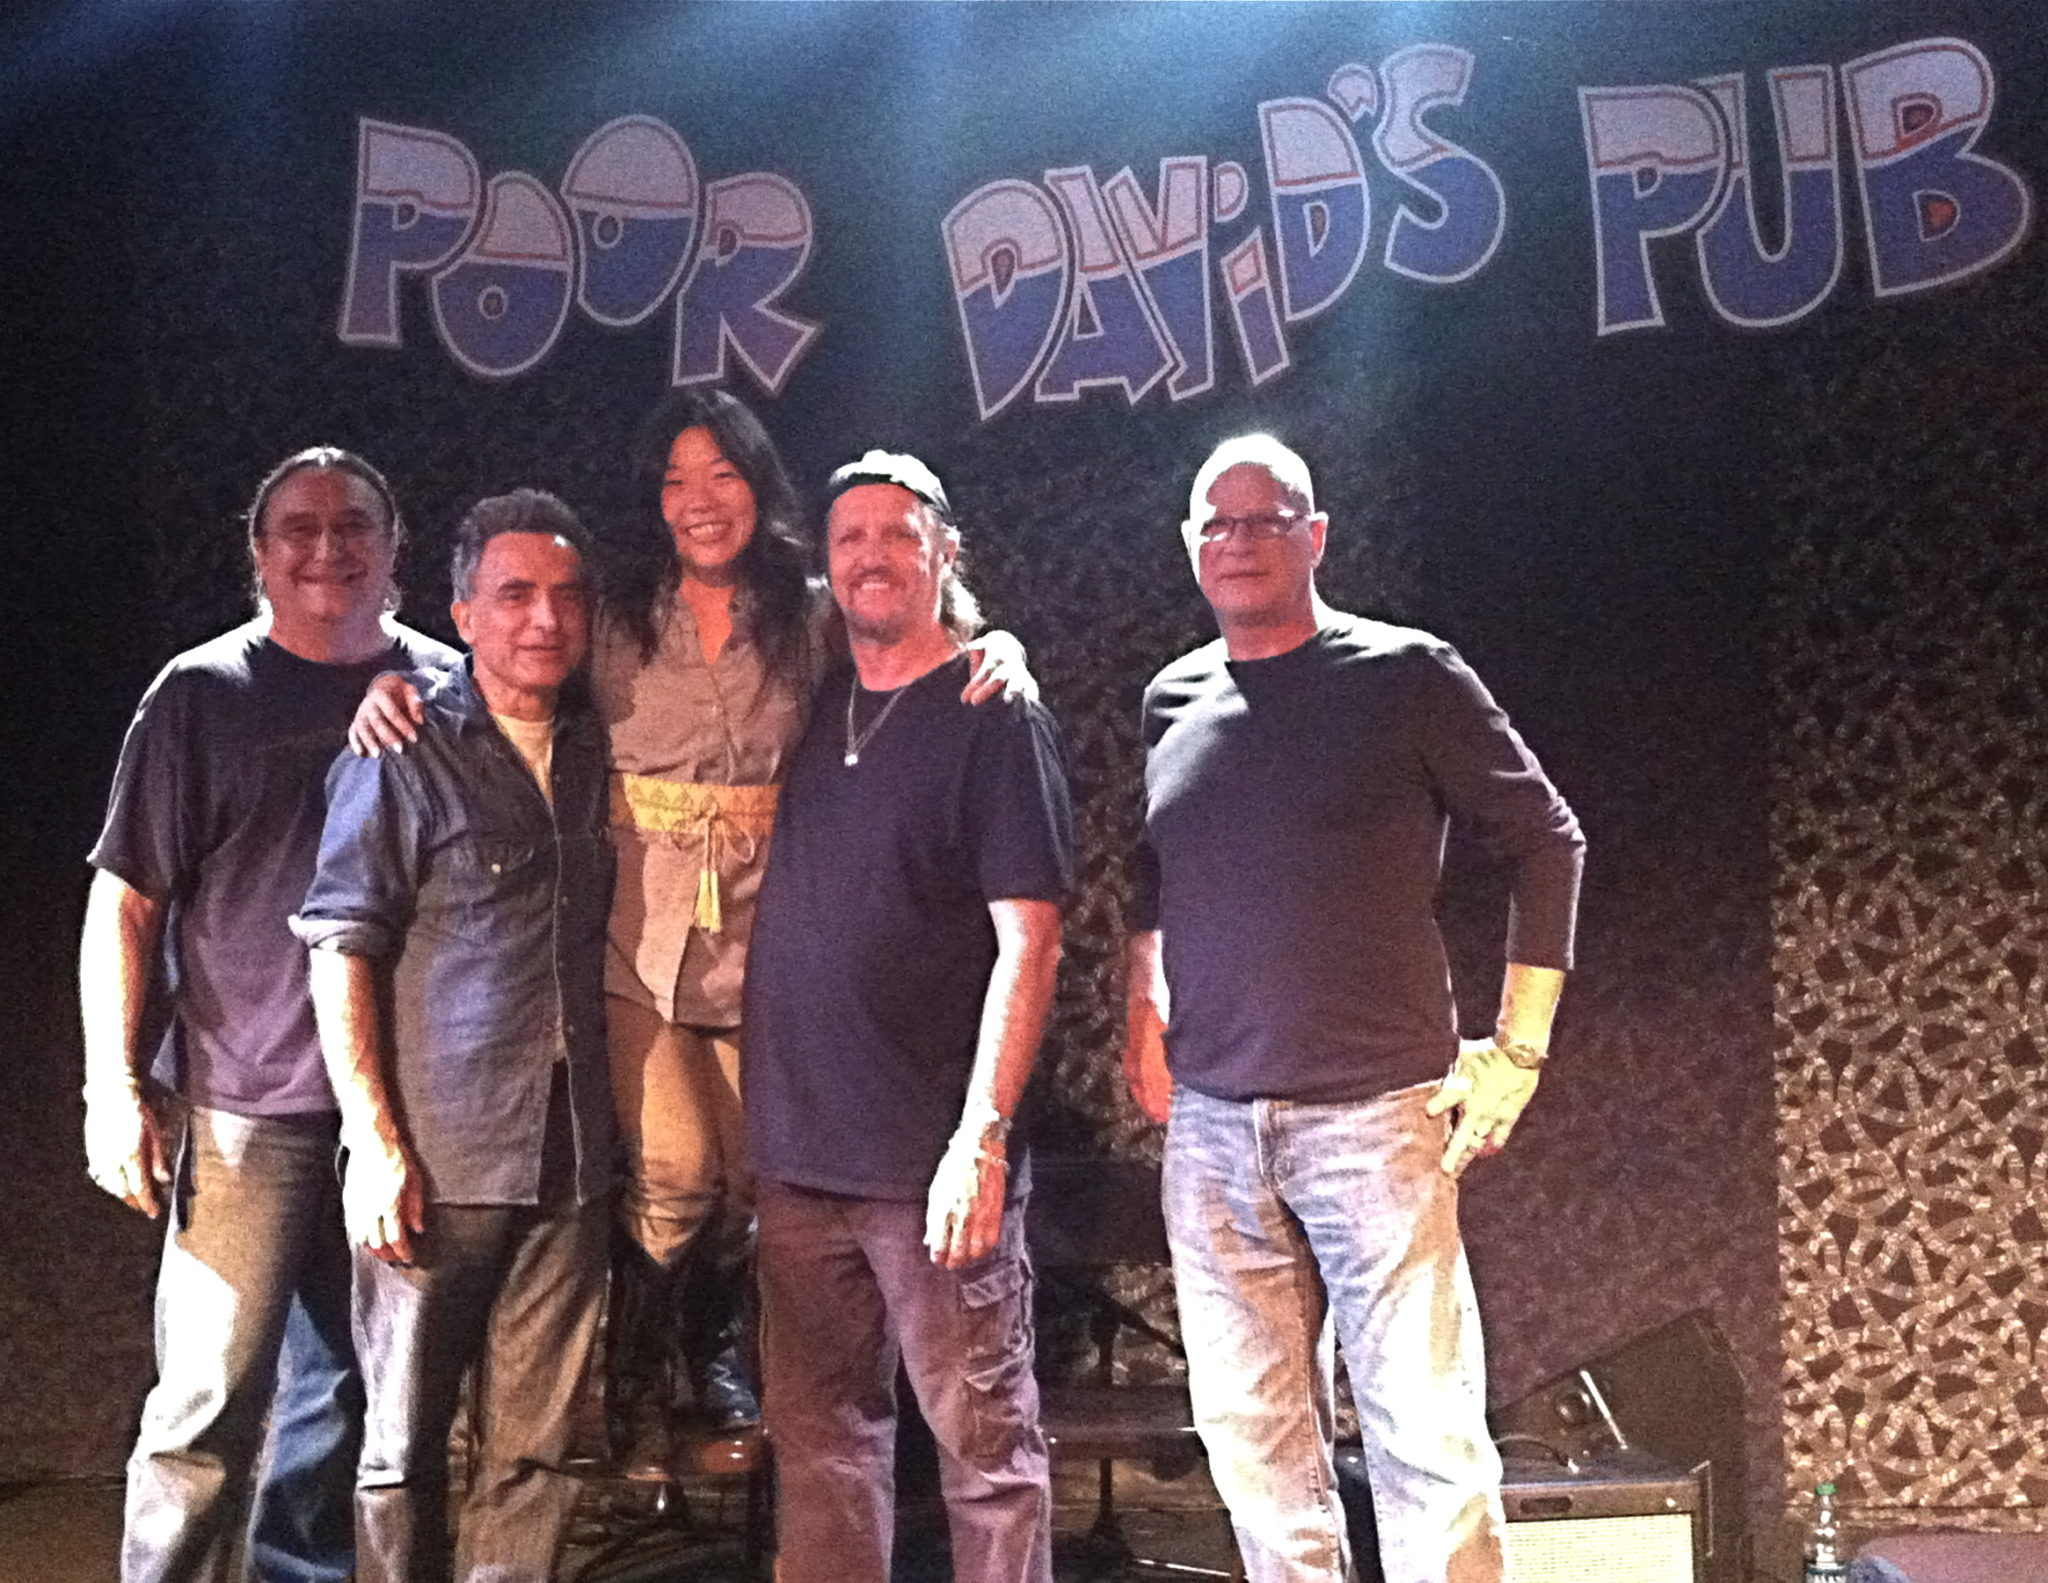 LaFave's Favs: (from left) Bobby Kallus, Michael Fracasso, BettySoo, Jimmy LaFave and Glenn Schuetz at Poor David's Pub in 2012. (Photo by Tiffany Walker)